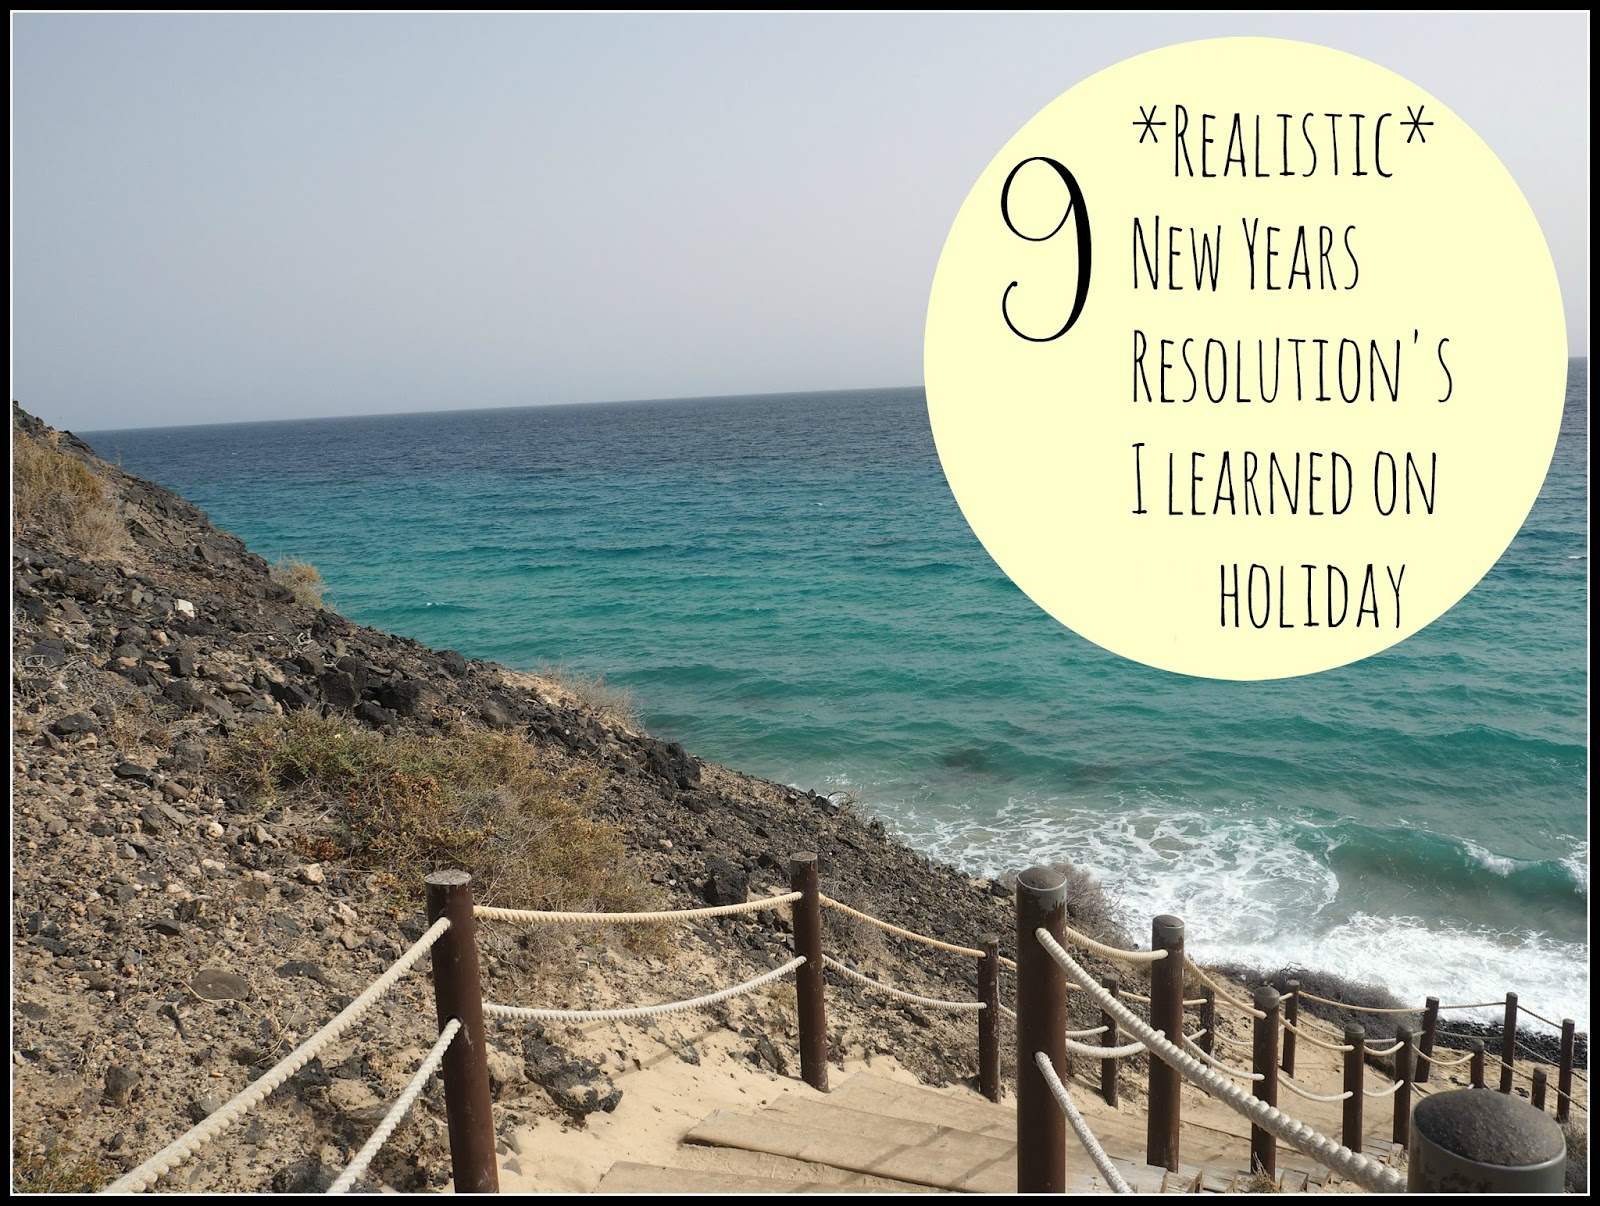 V. I. BABYBRAIN: 9 *Realistic* New Years Resolution's I learned on holiday